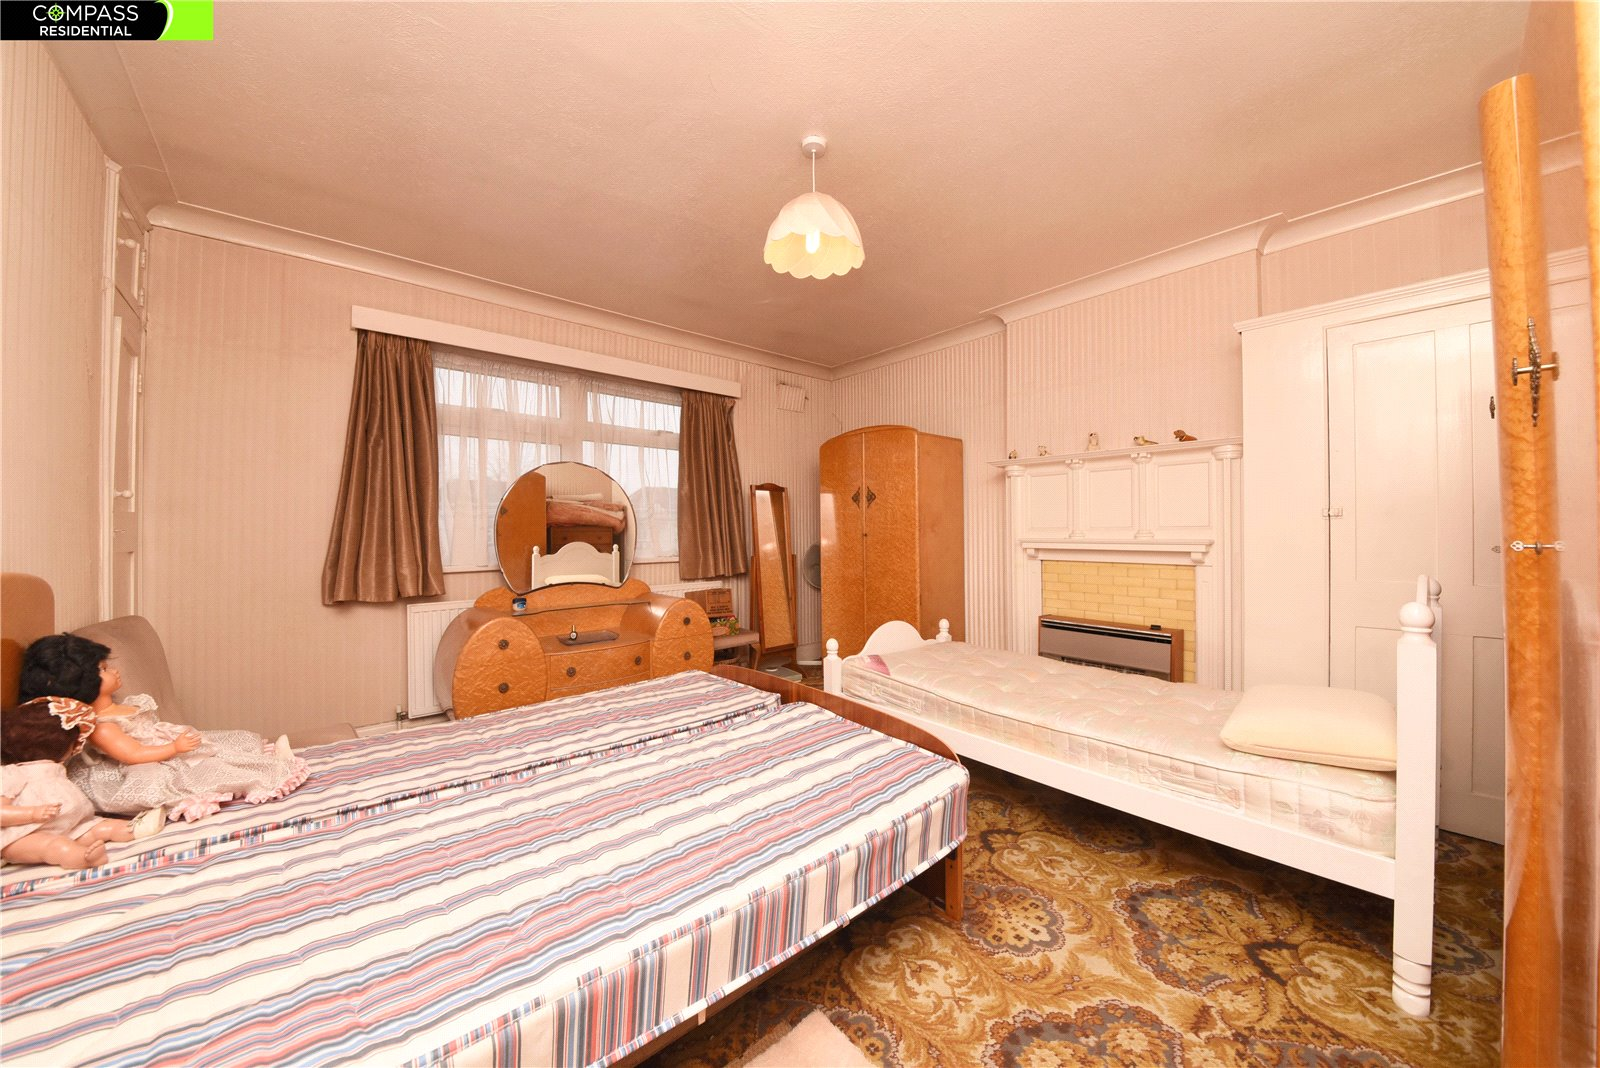 3 bed house for sale in Whetstone, N20 9PT  - Property Image 10